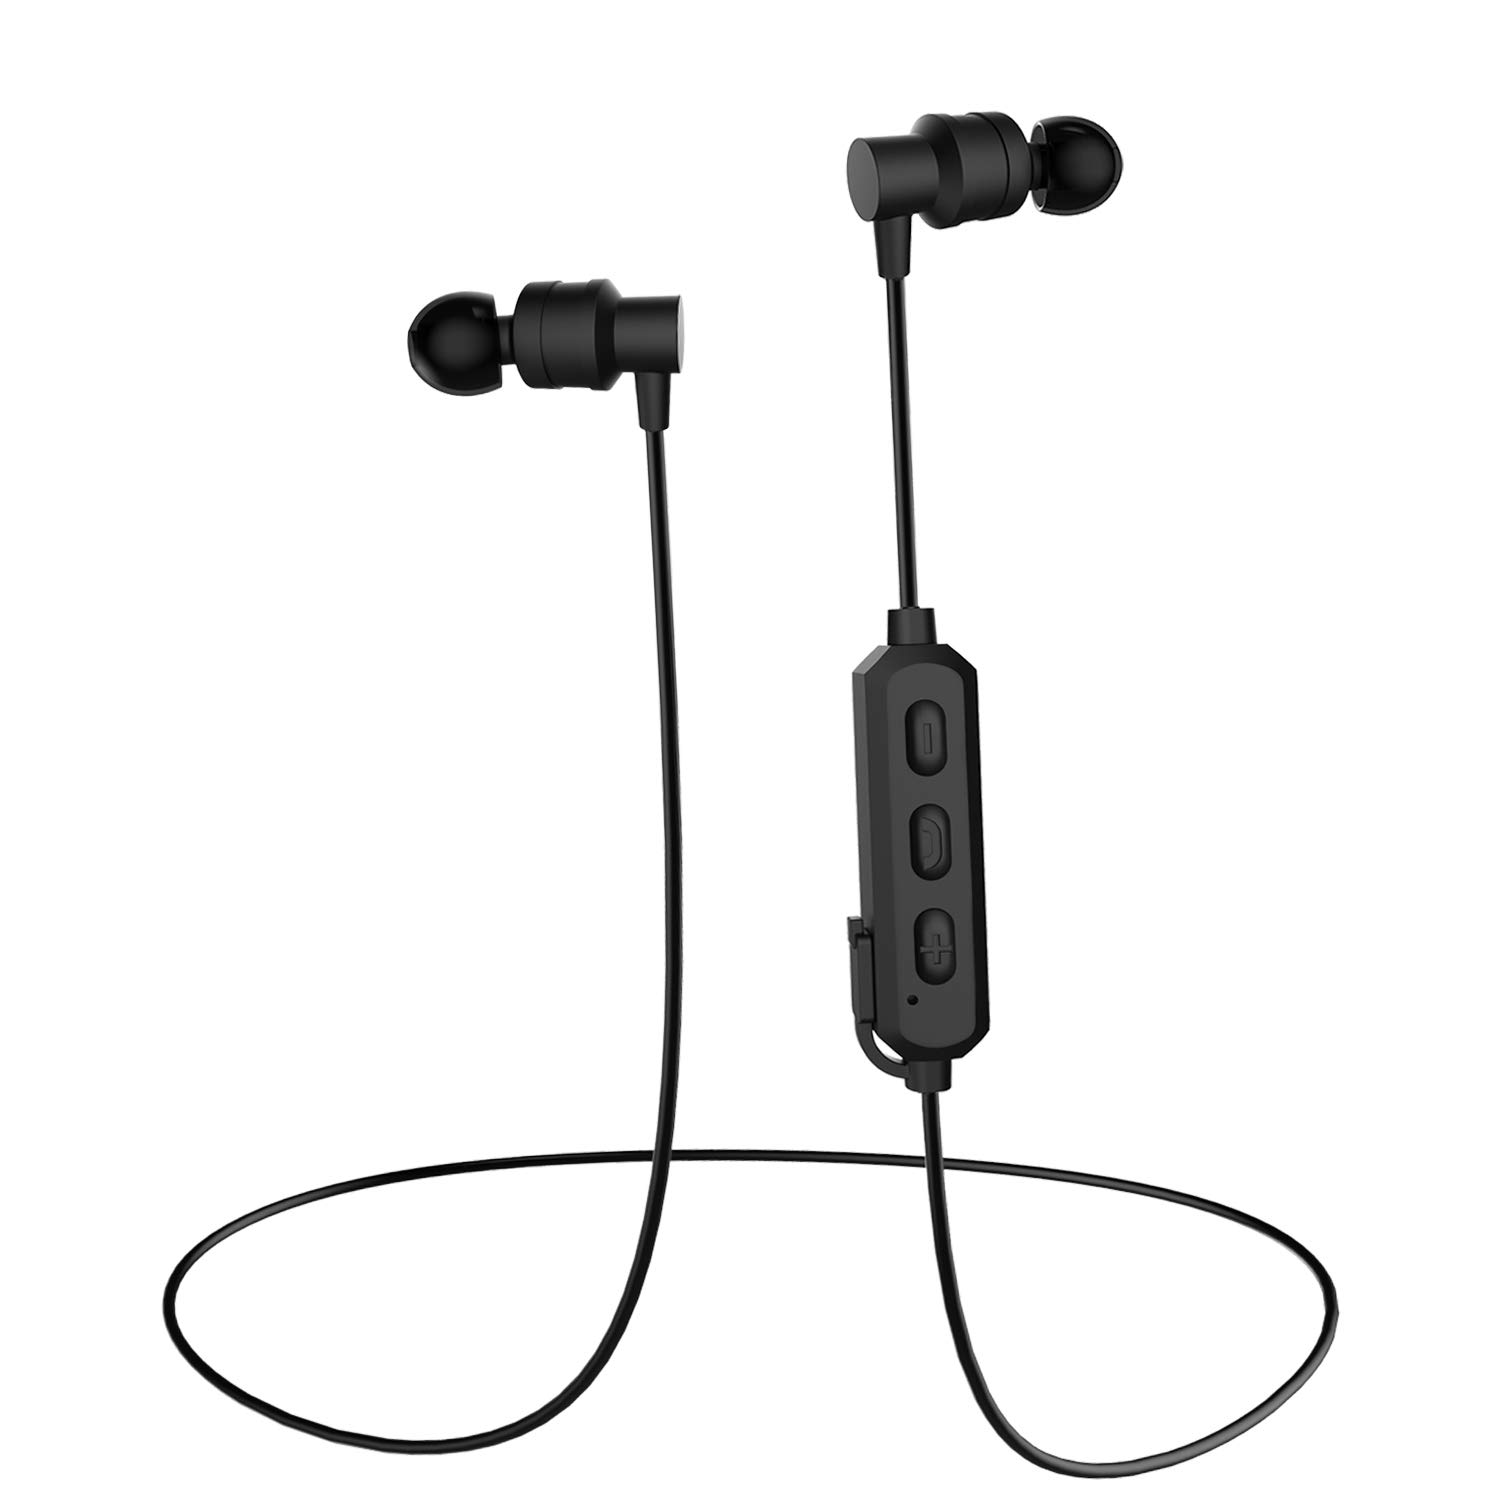 True Wireless Earbuds, RXAMYDE Wireless Earphones Stereo Bluetooth 5.0 Headphone IPX7 Waterproof Deep Bass Headset with Built-in MIC and Charging Case 24-Hour Playtime for Sports Business Gaming